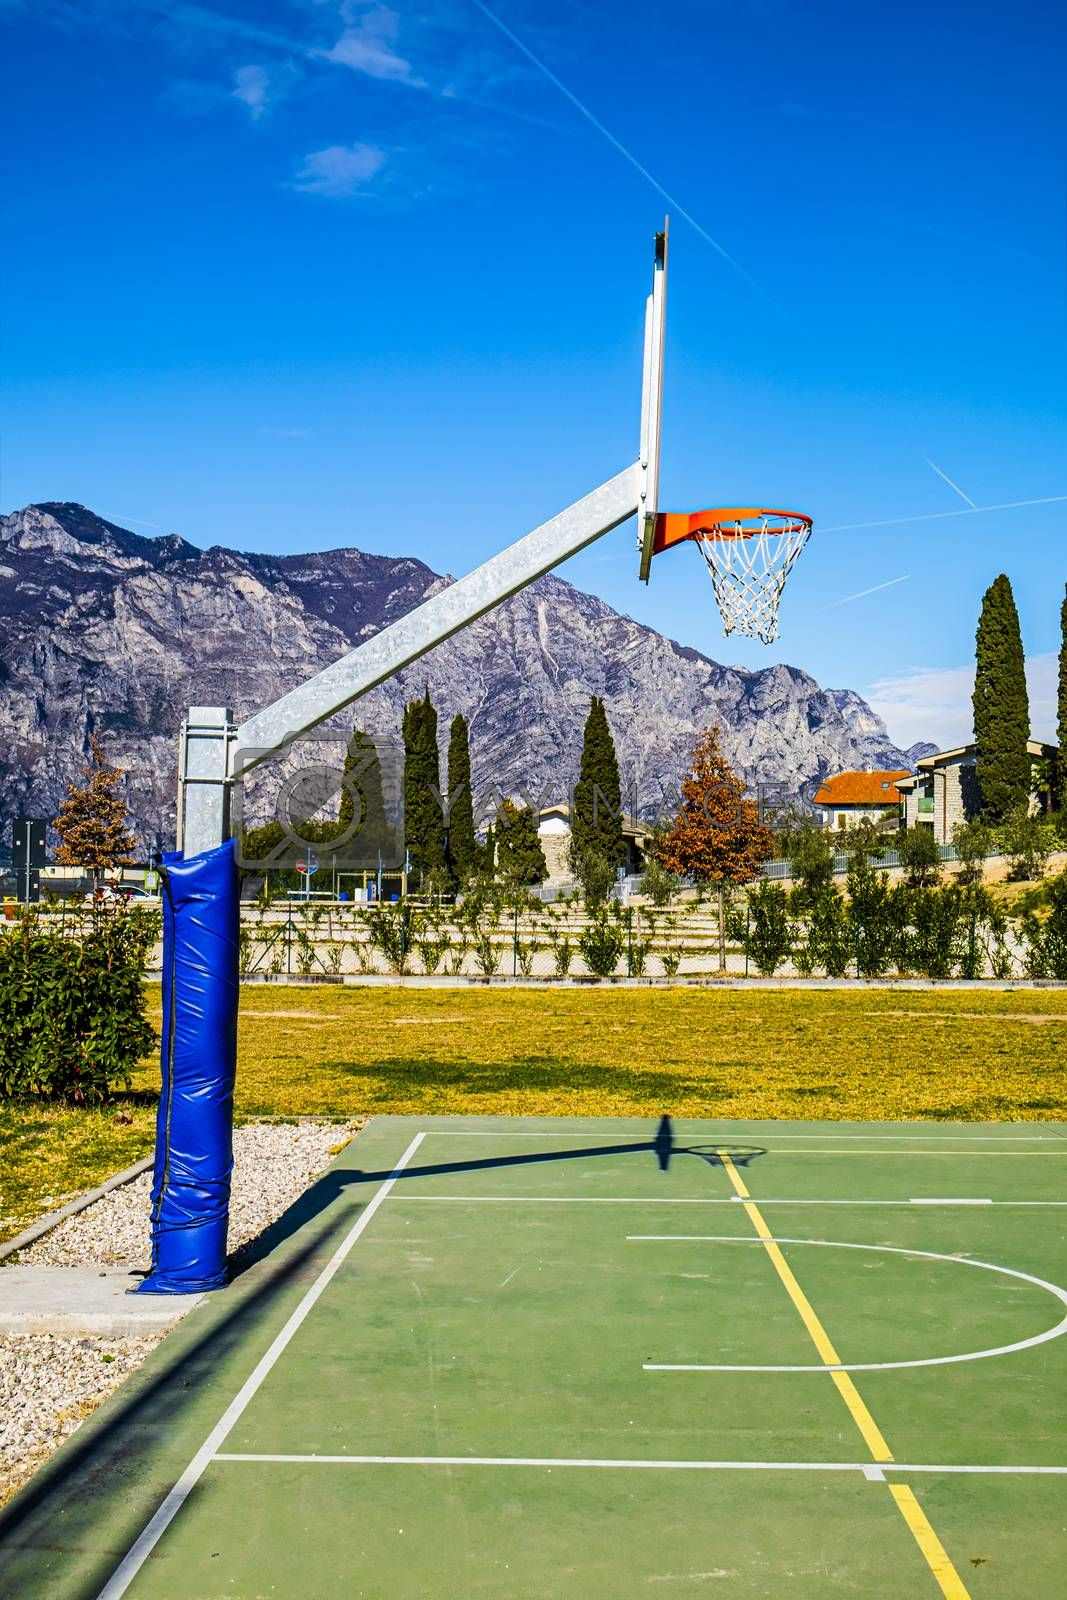 Deserted sports field on the shores of Lake Garda in Italy.